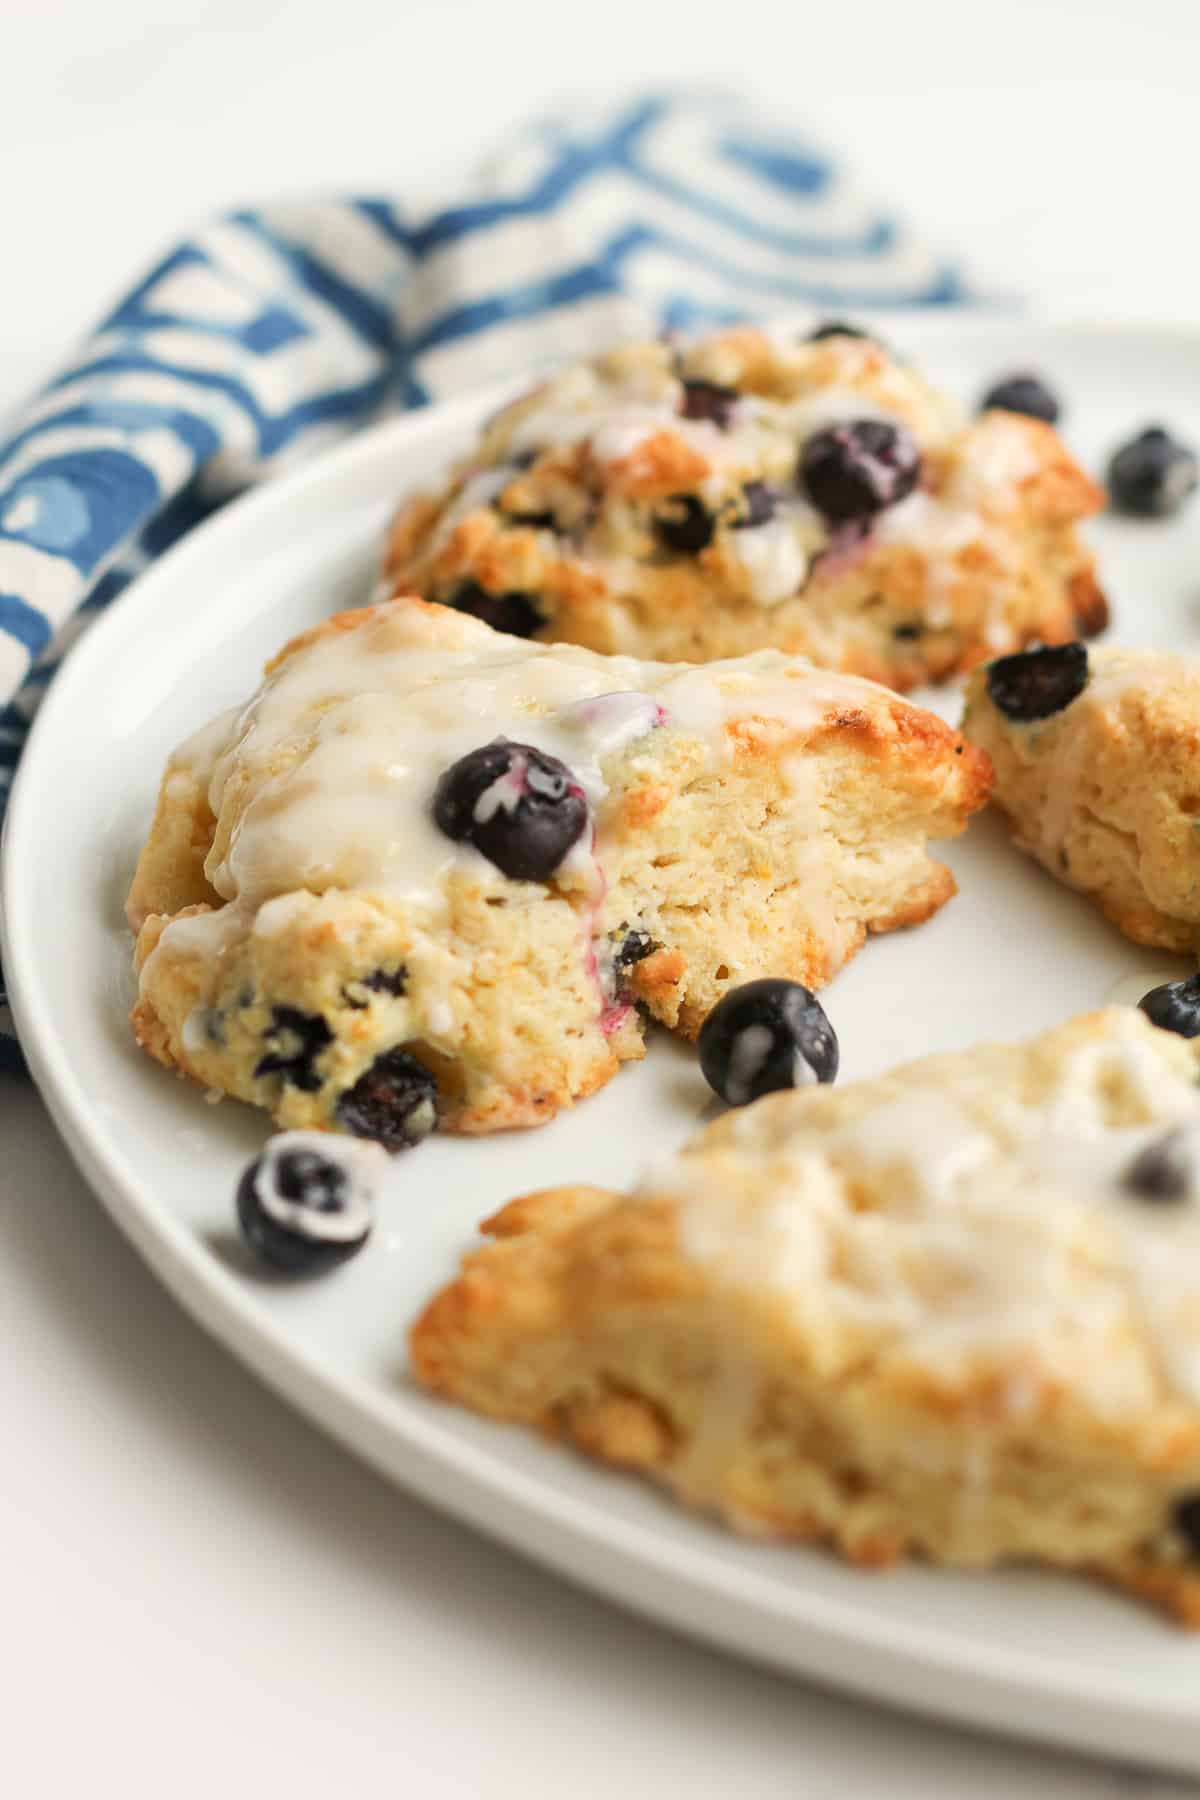 A plate of blueberry lemon scones, with a blue and white napkin.